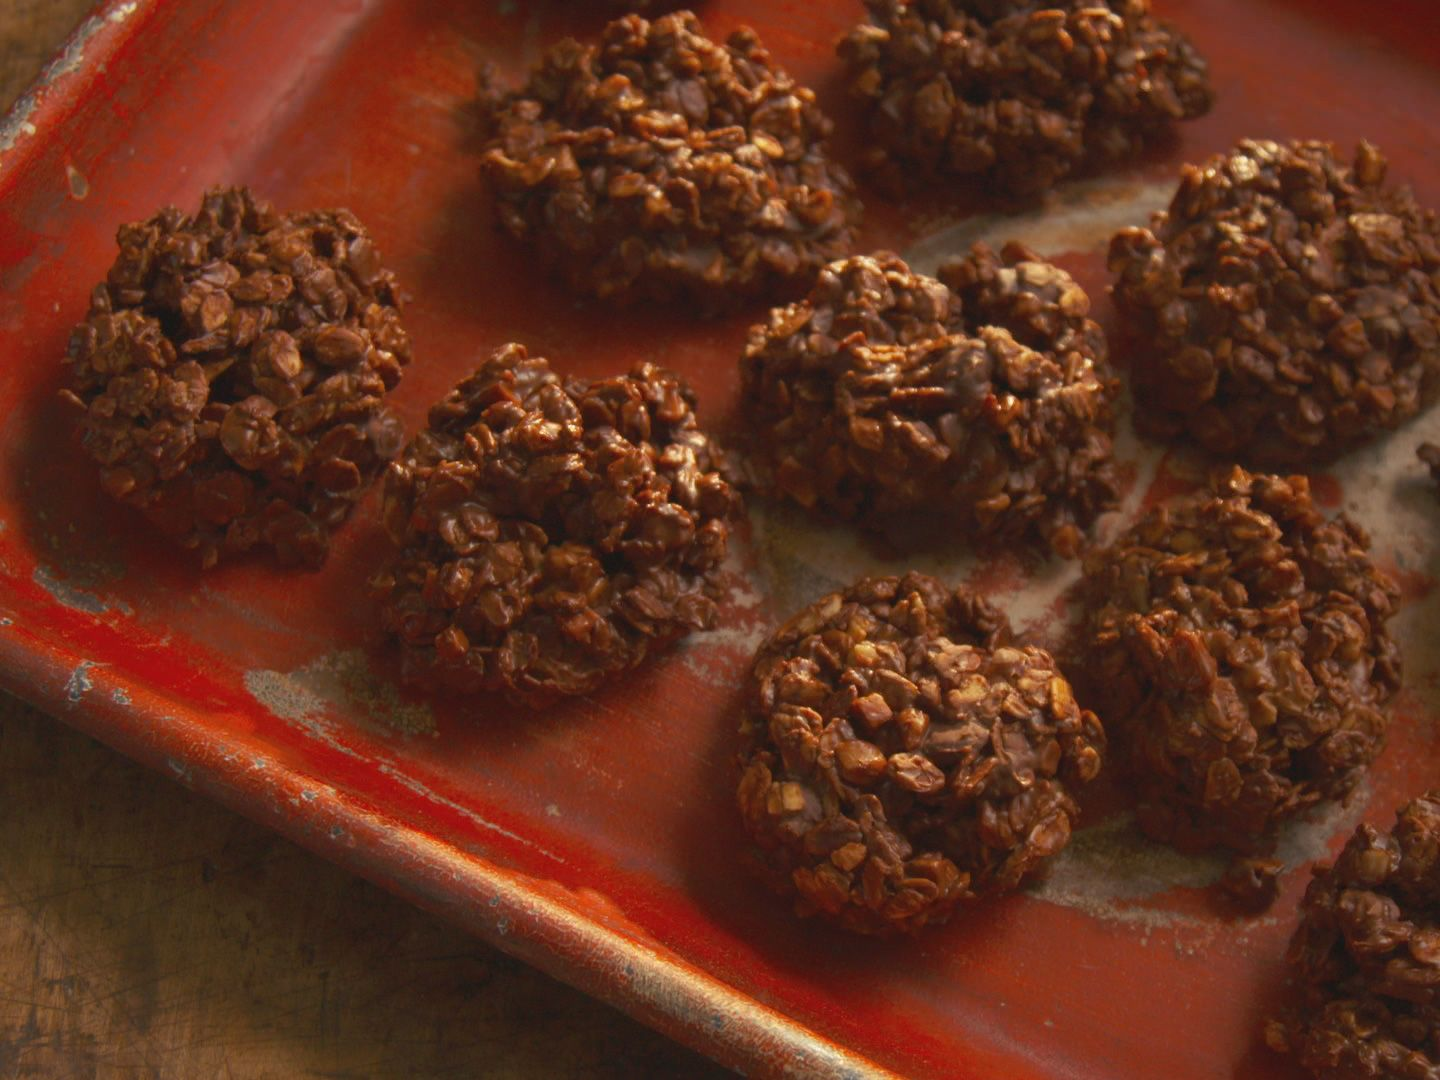 Food Network Farmhouse Rules Recipes Chocolate Toffee No Bake Cookies Recipe Chocolate